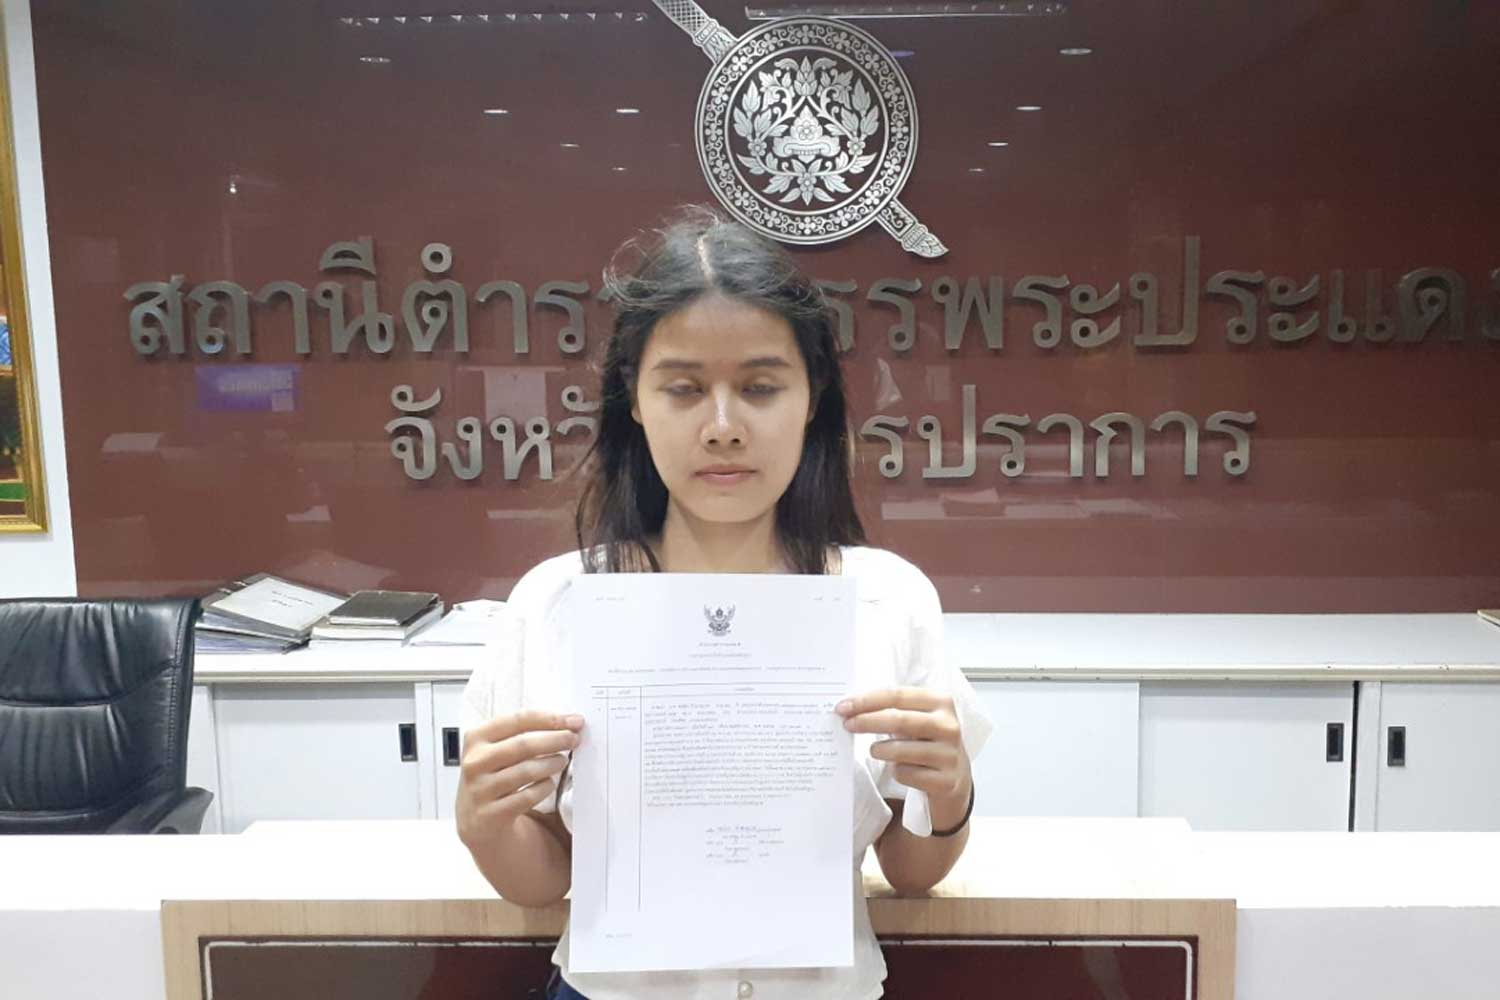 Pornthida Chamnanwet, 23, shows her written complaint that her husband had taken off with their winning 6-million-baht lottery ticket, at Phra Pradaeng police station in Samut Prakan on Sunday night. (Photo by Sutthiwit Chayutworakan)